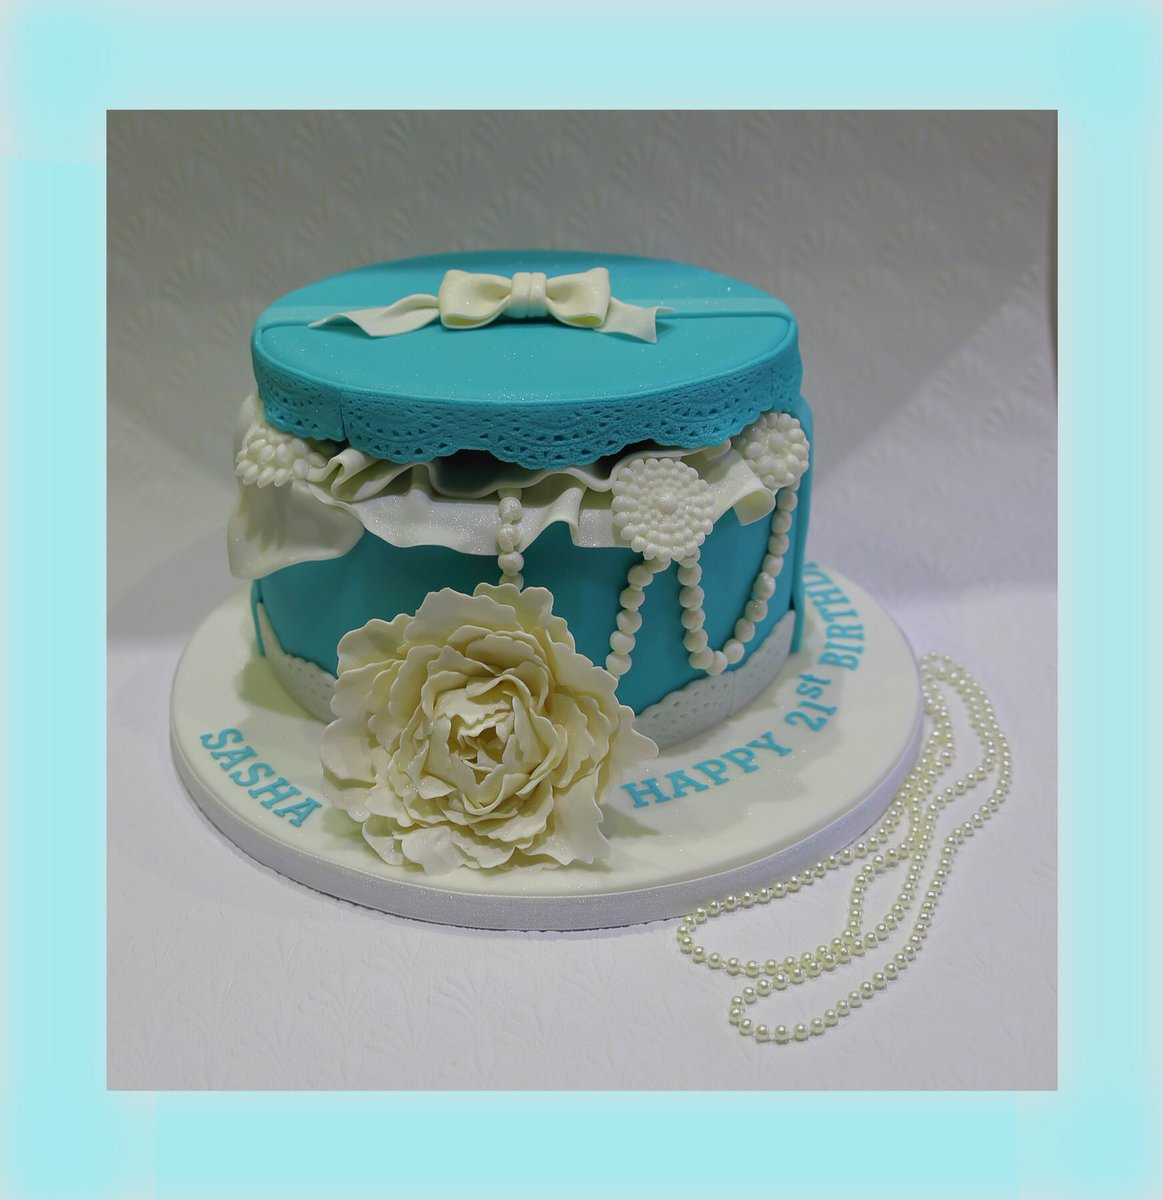 Anita B Cakes On Twitter Last Minute Orders Are Possible